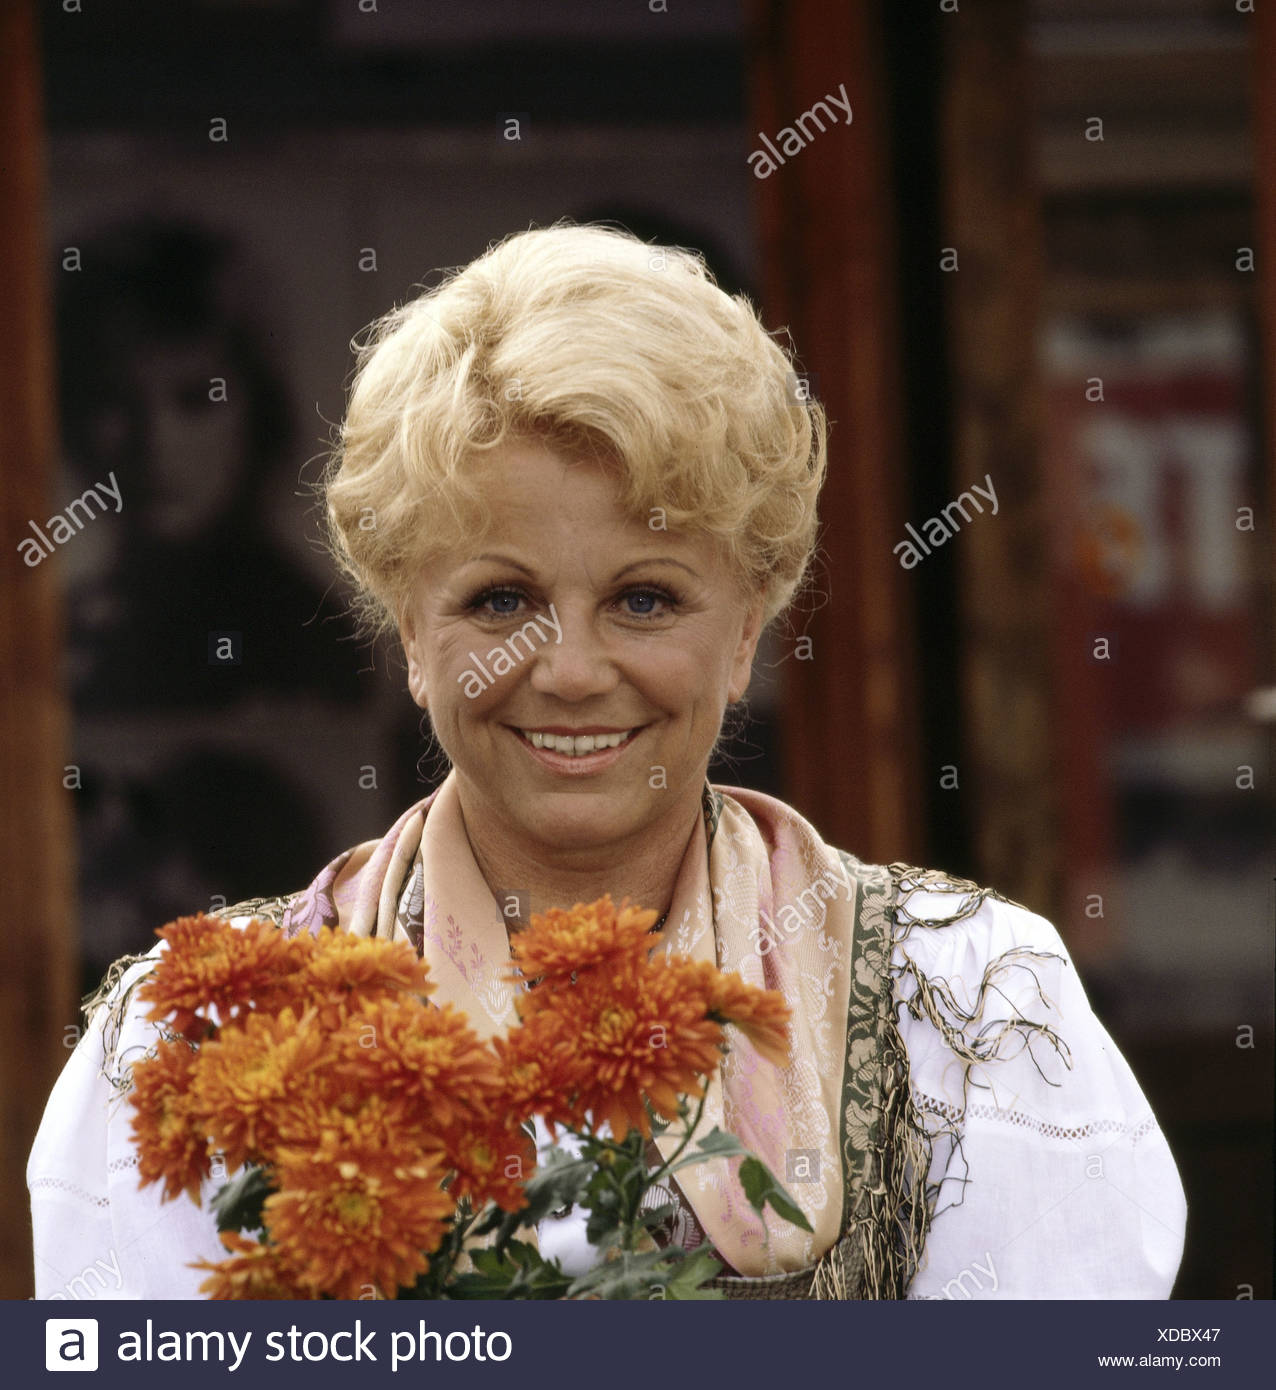 Hellwig, Maria, 22.2.1920 - 26.11.2010, German singer (folk music), portrait, 1981, Additional-Rights-Clearances-NA - Stock Image